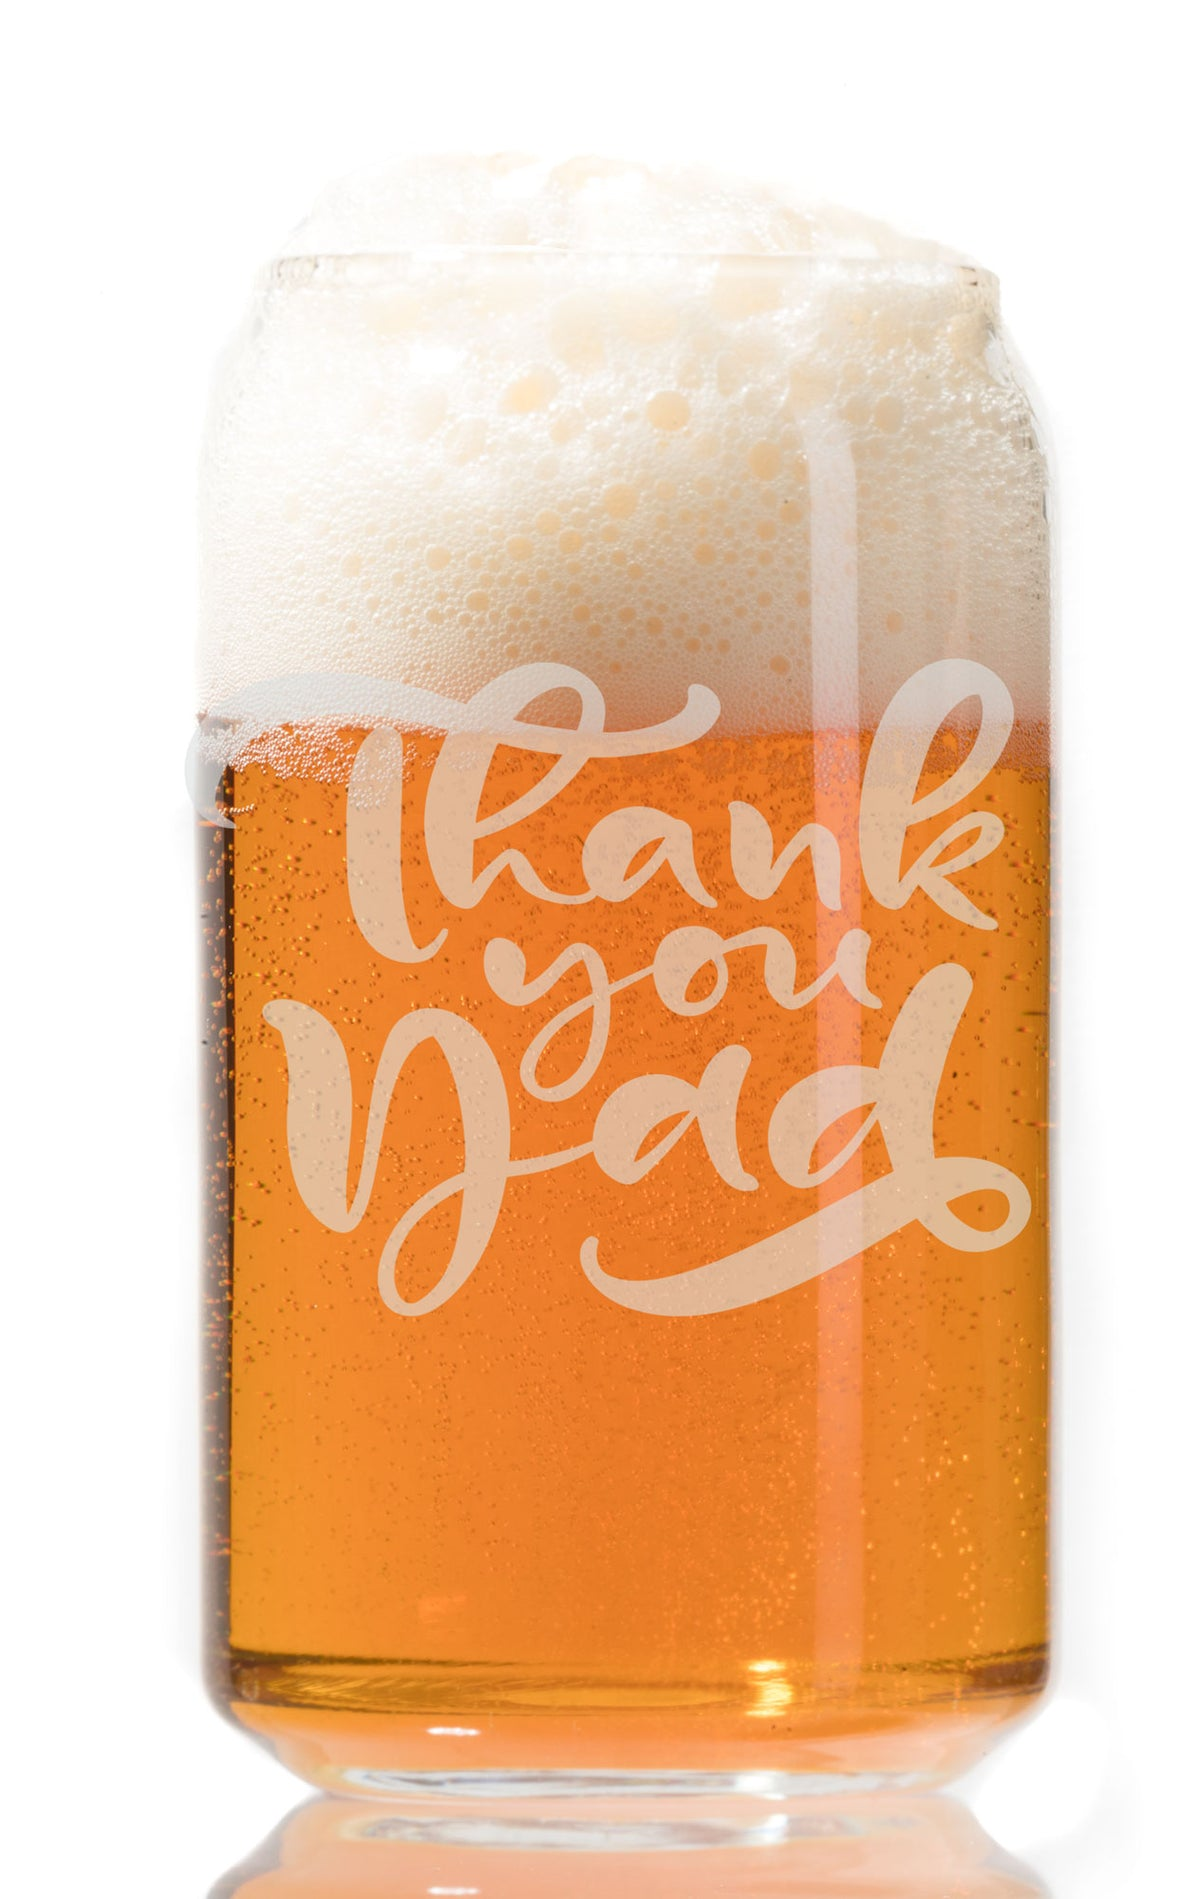 Thank You Dad - Etched Pint Beer Glass 16 oz - Perfect Gift For Dad and Grandpa